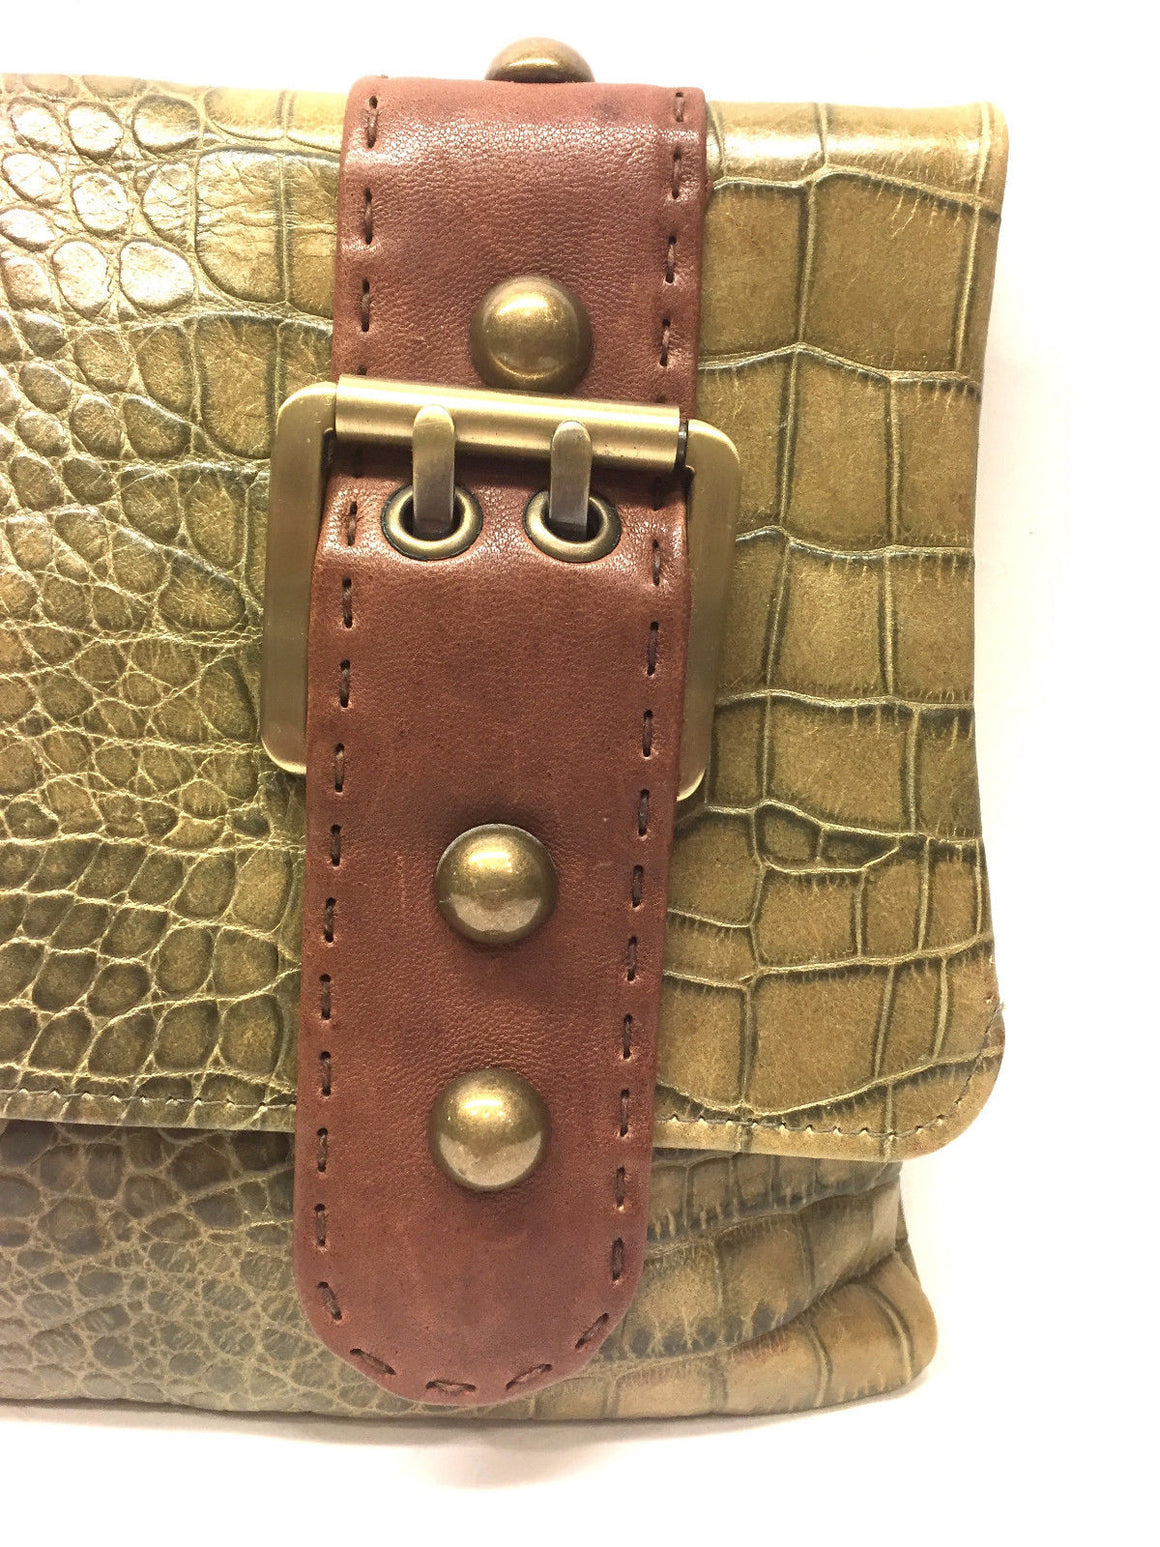 bisbiz.com CARLA MANCINI Moss-Green Croc-Patterned Leather Fold-over Clutch Bag Purse - Bis Luxury Resale